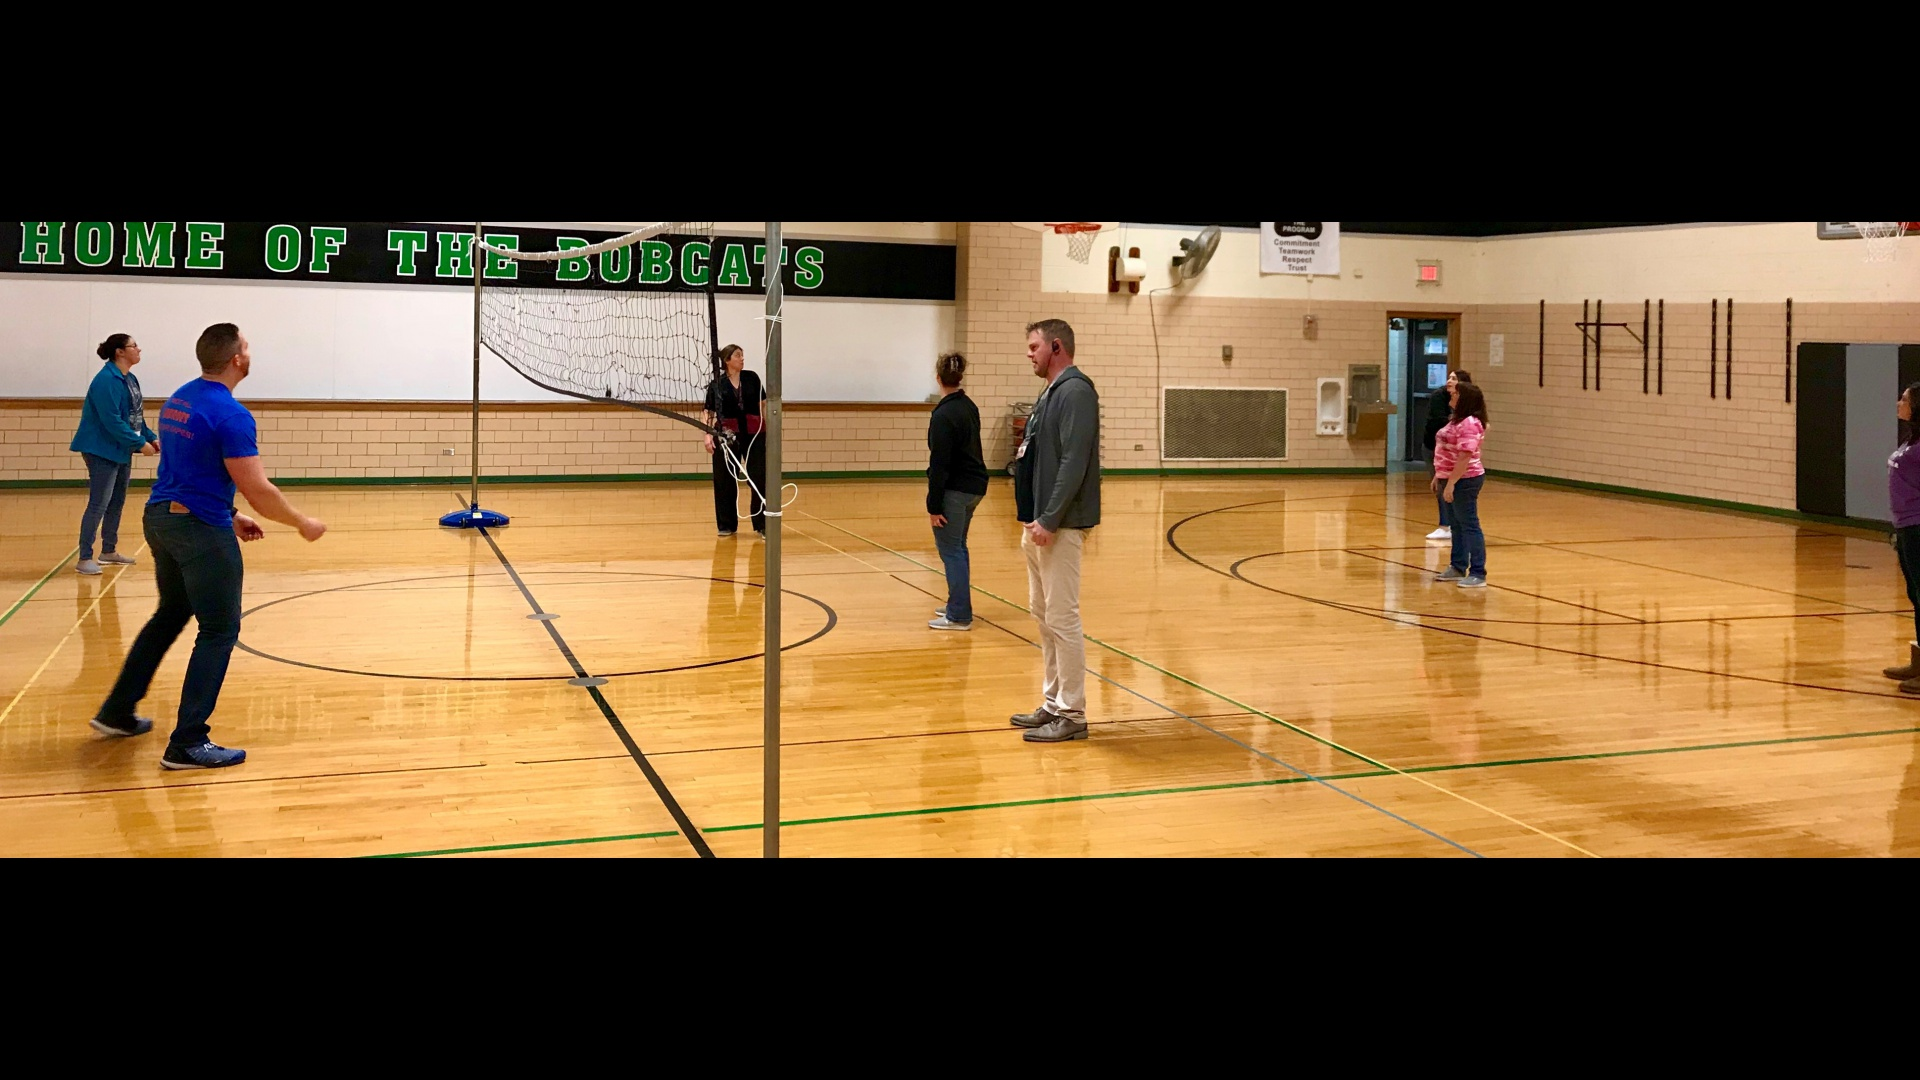 slidshow image - Staff vs. Staff Volleyball Game - Rationally Detaching!